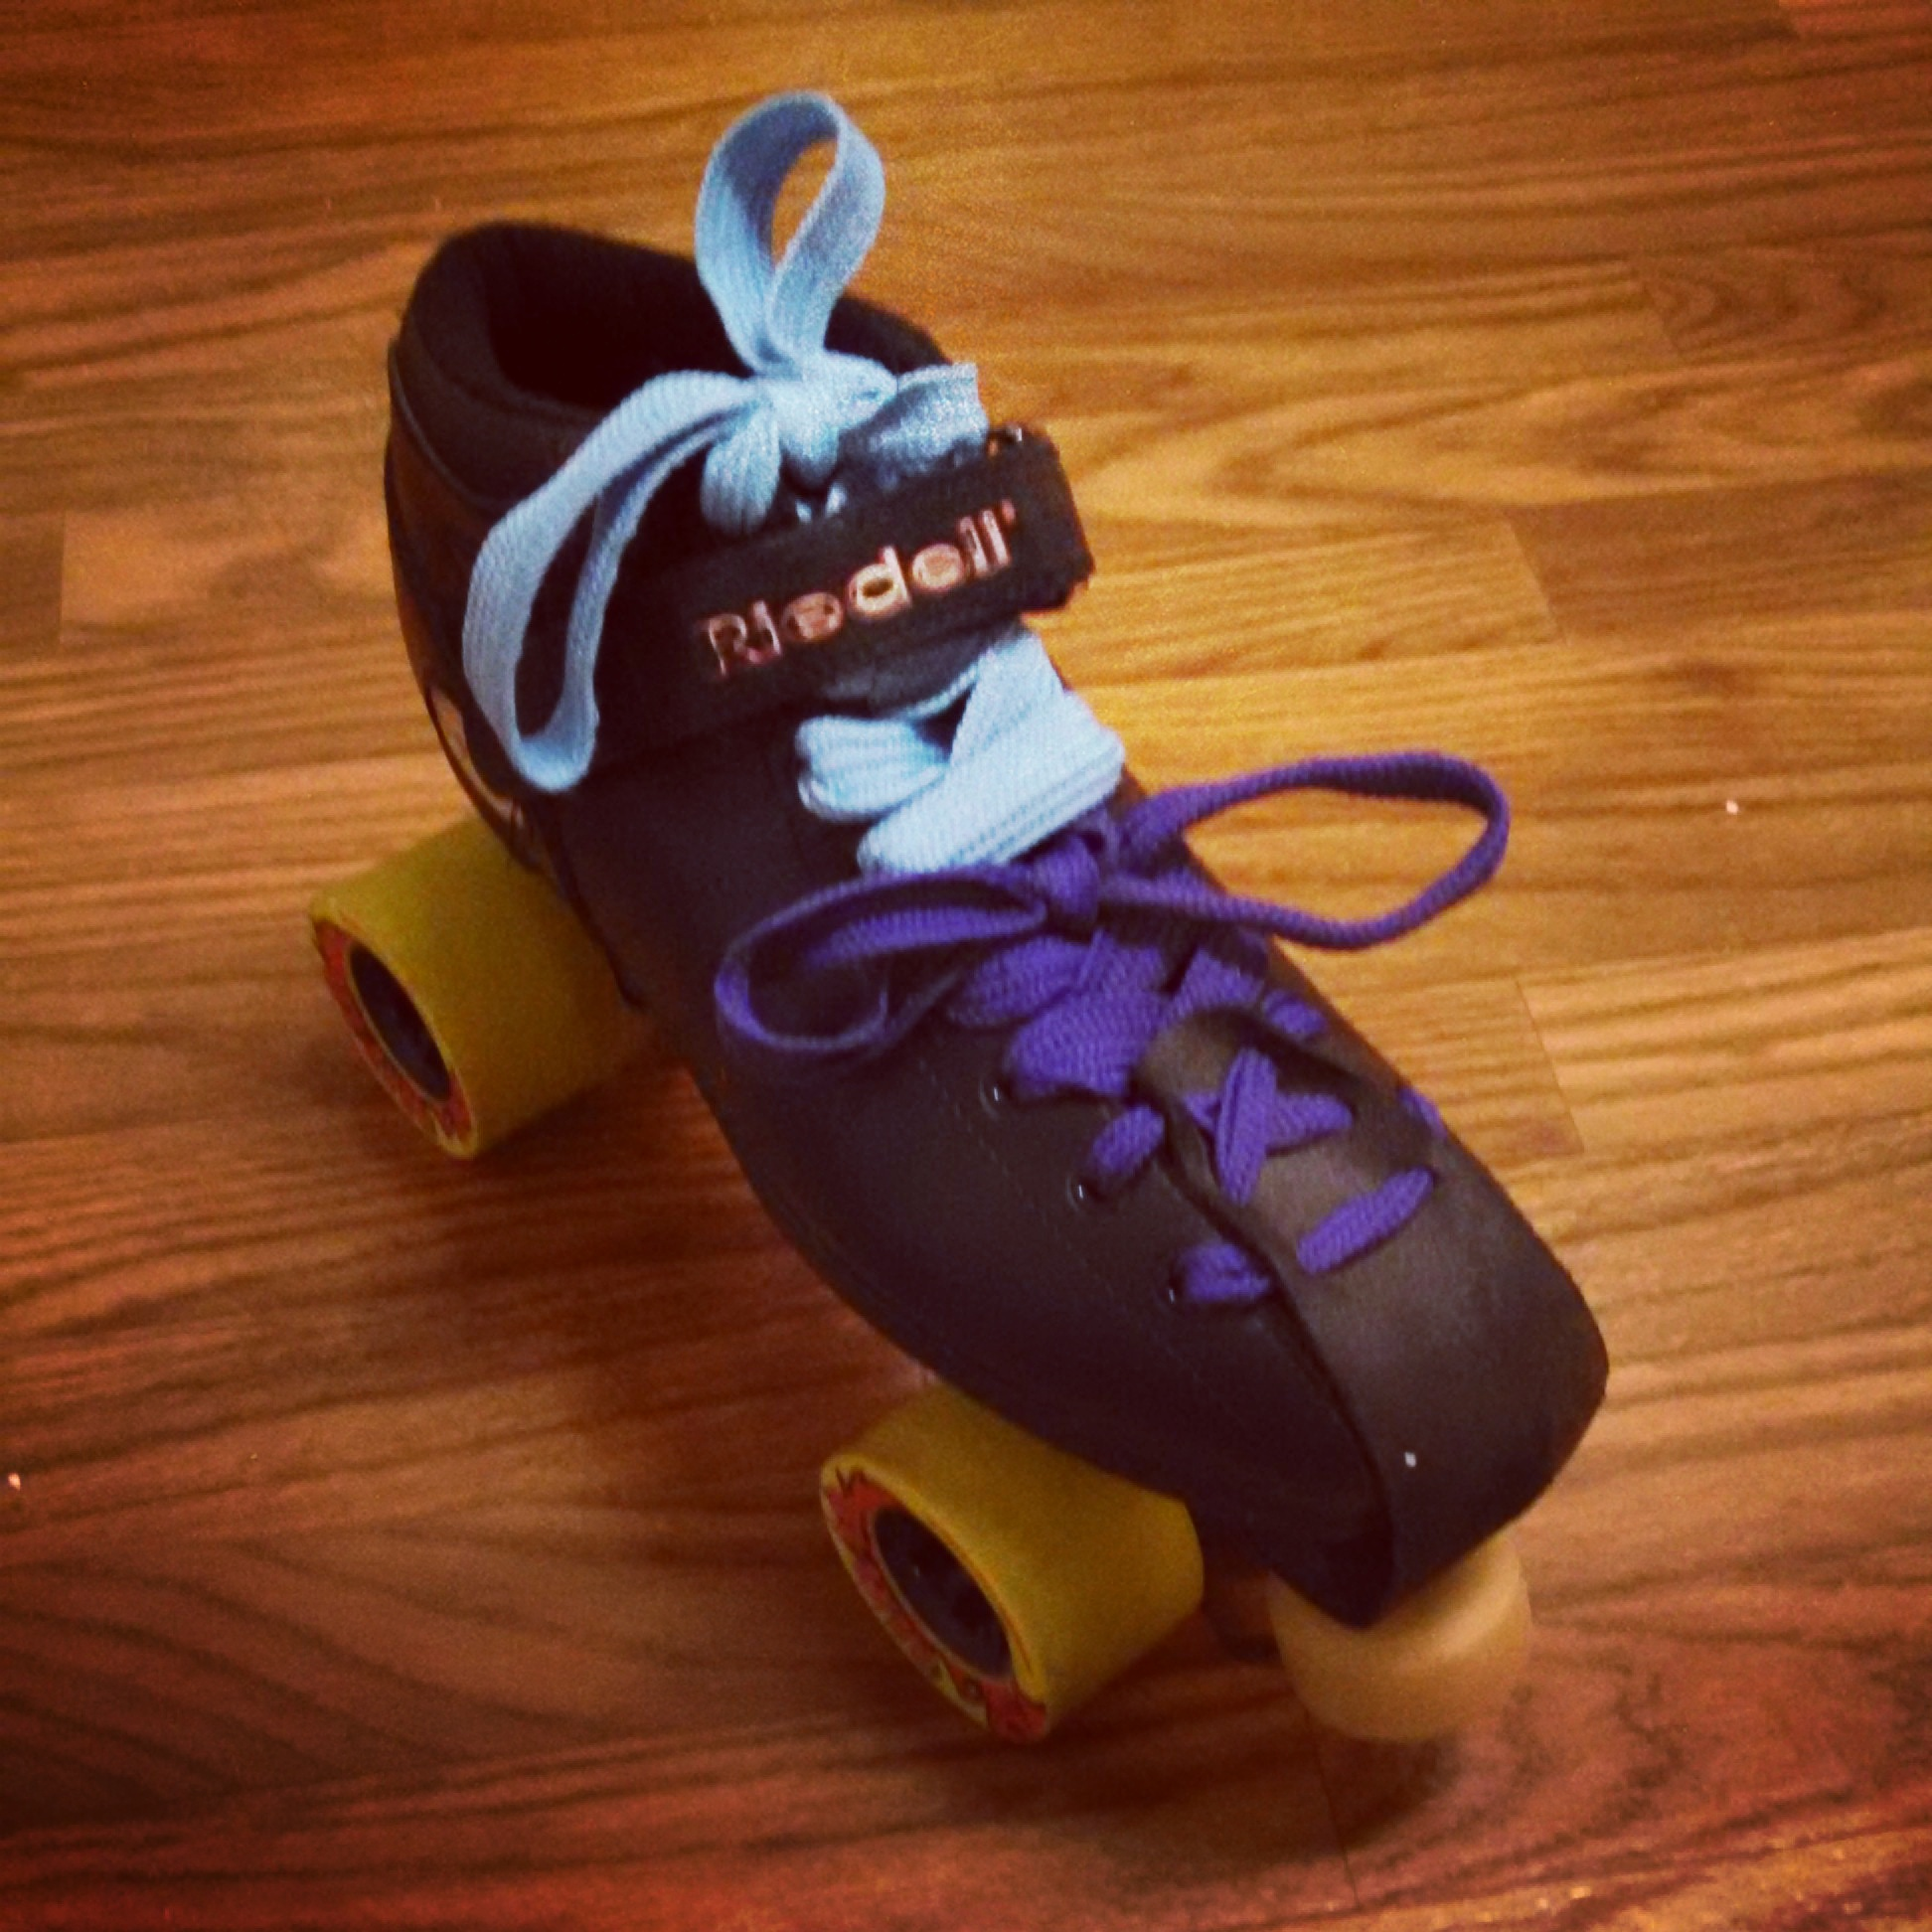 R3 Skates - laces with two laces